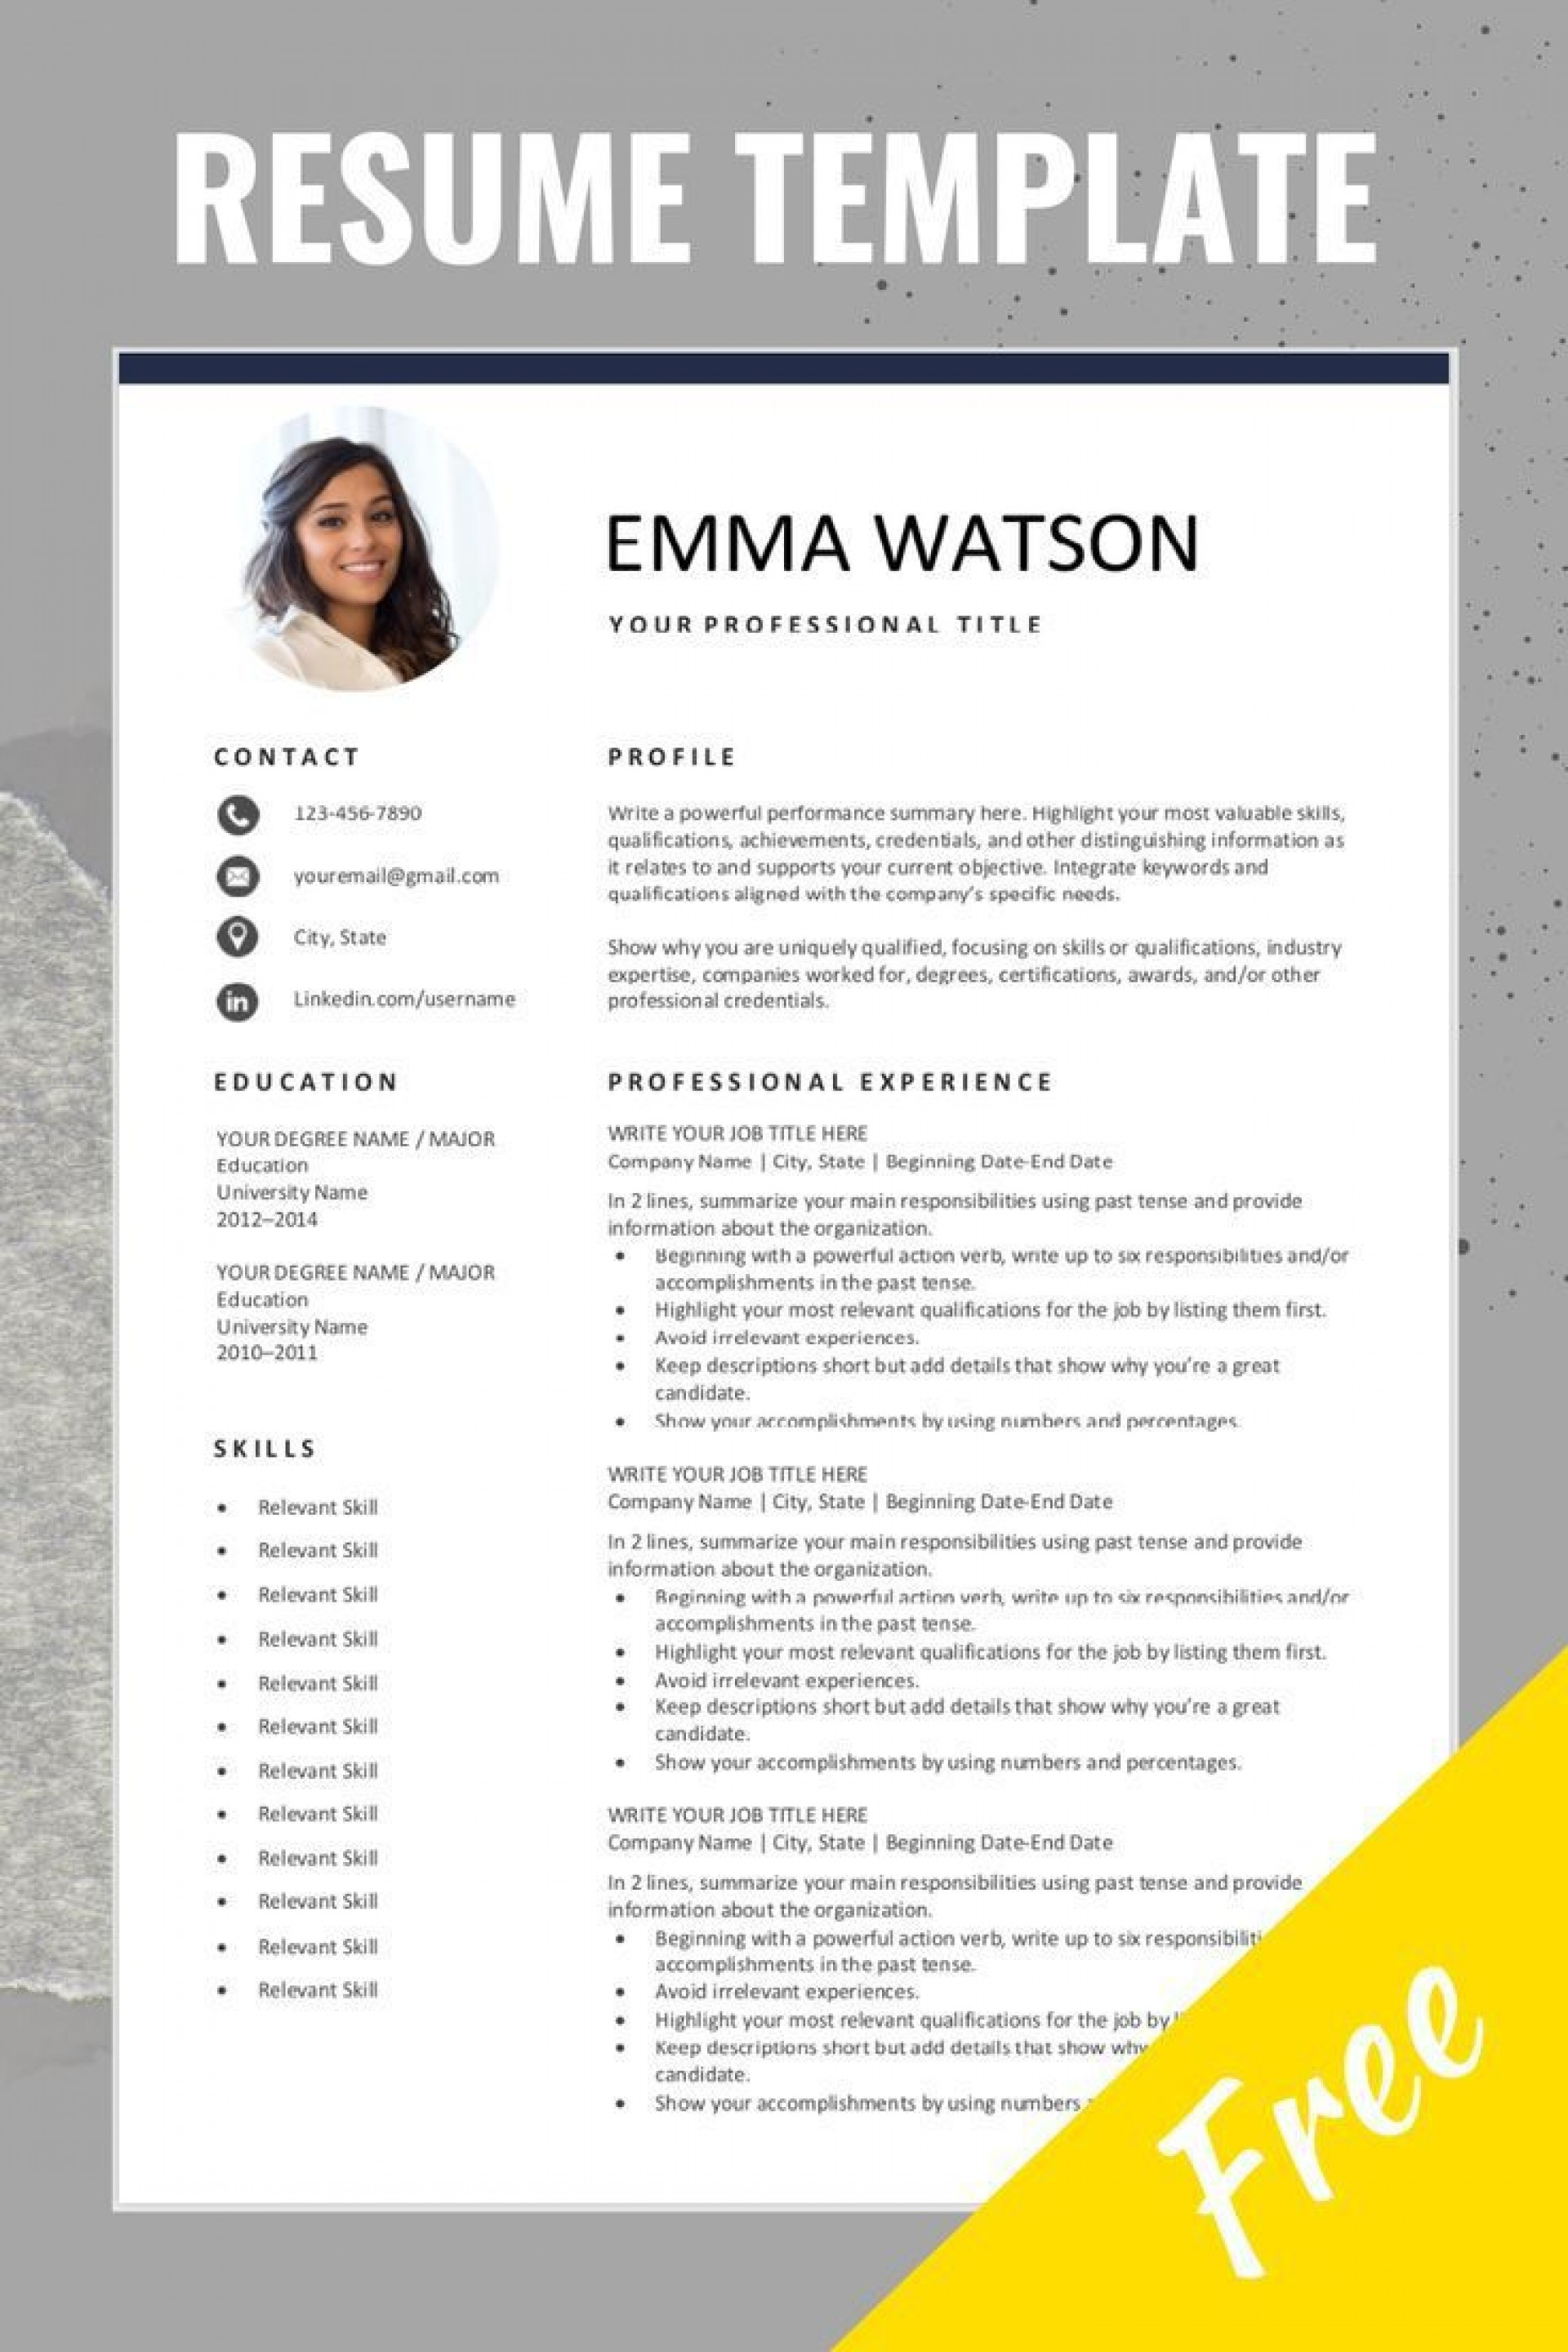 000 Unique Resume Template Word Download Sample  For Fresher In Format Free 20201920